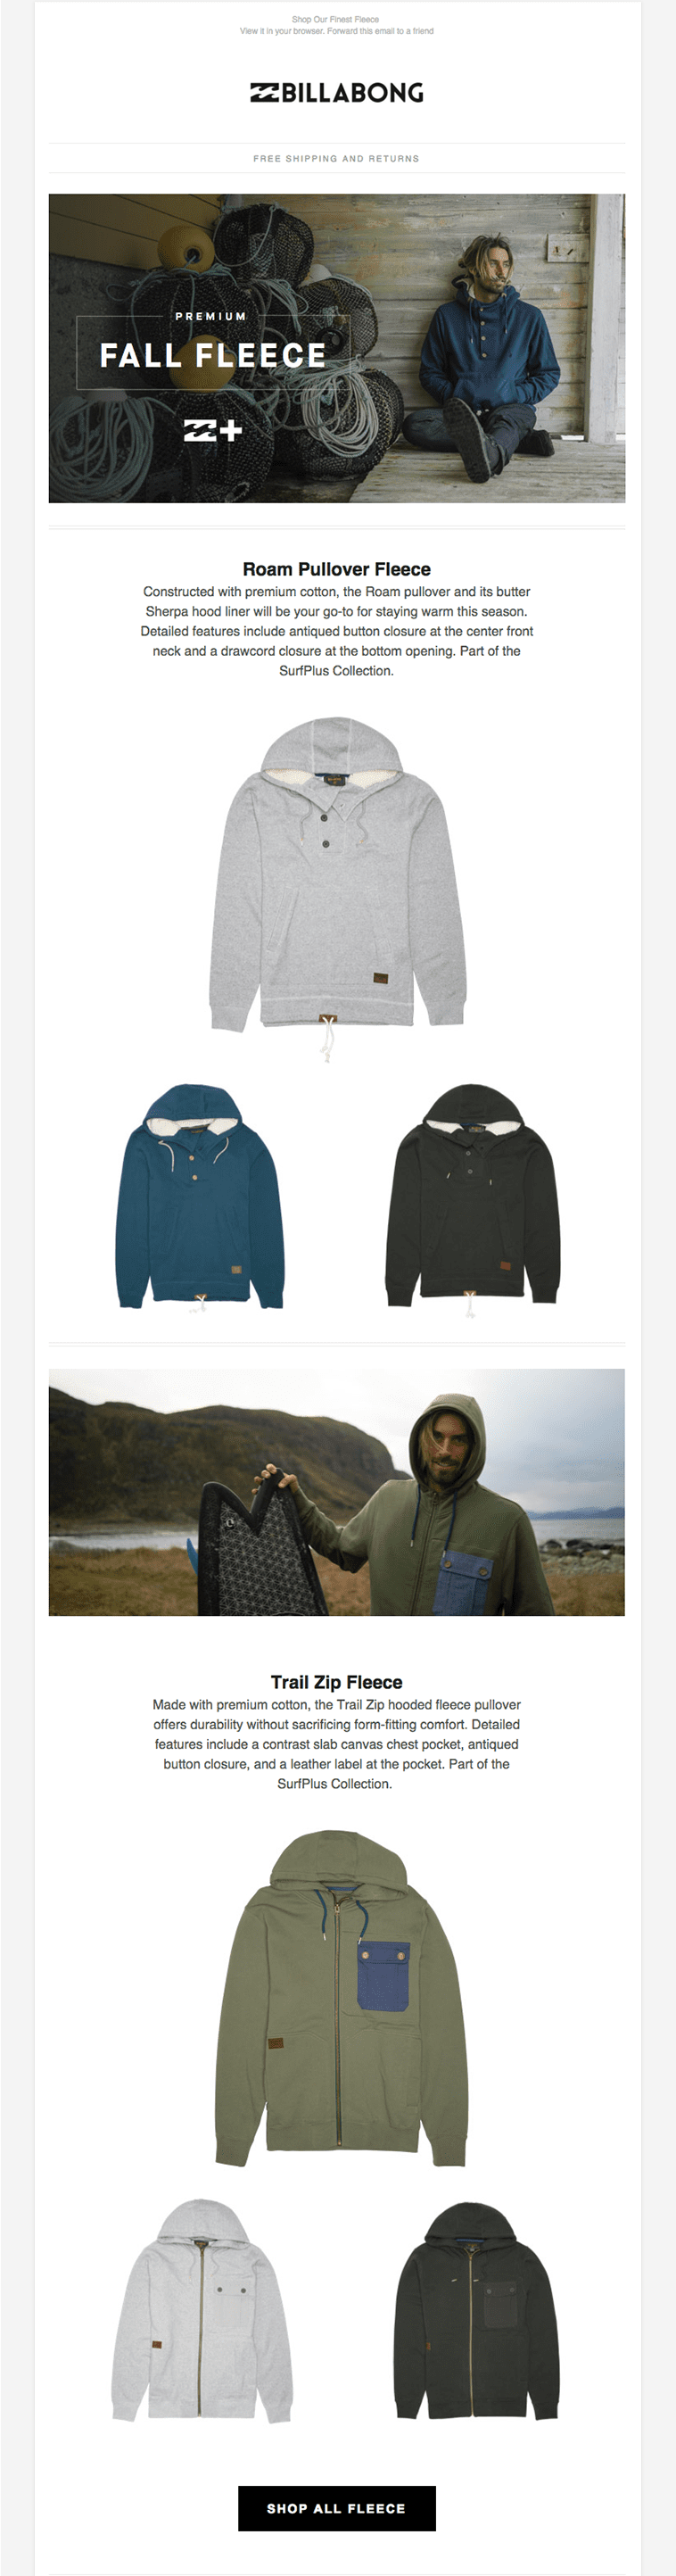 Email from Billabong on a desktop